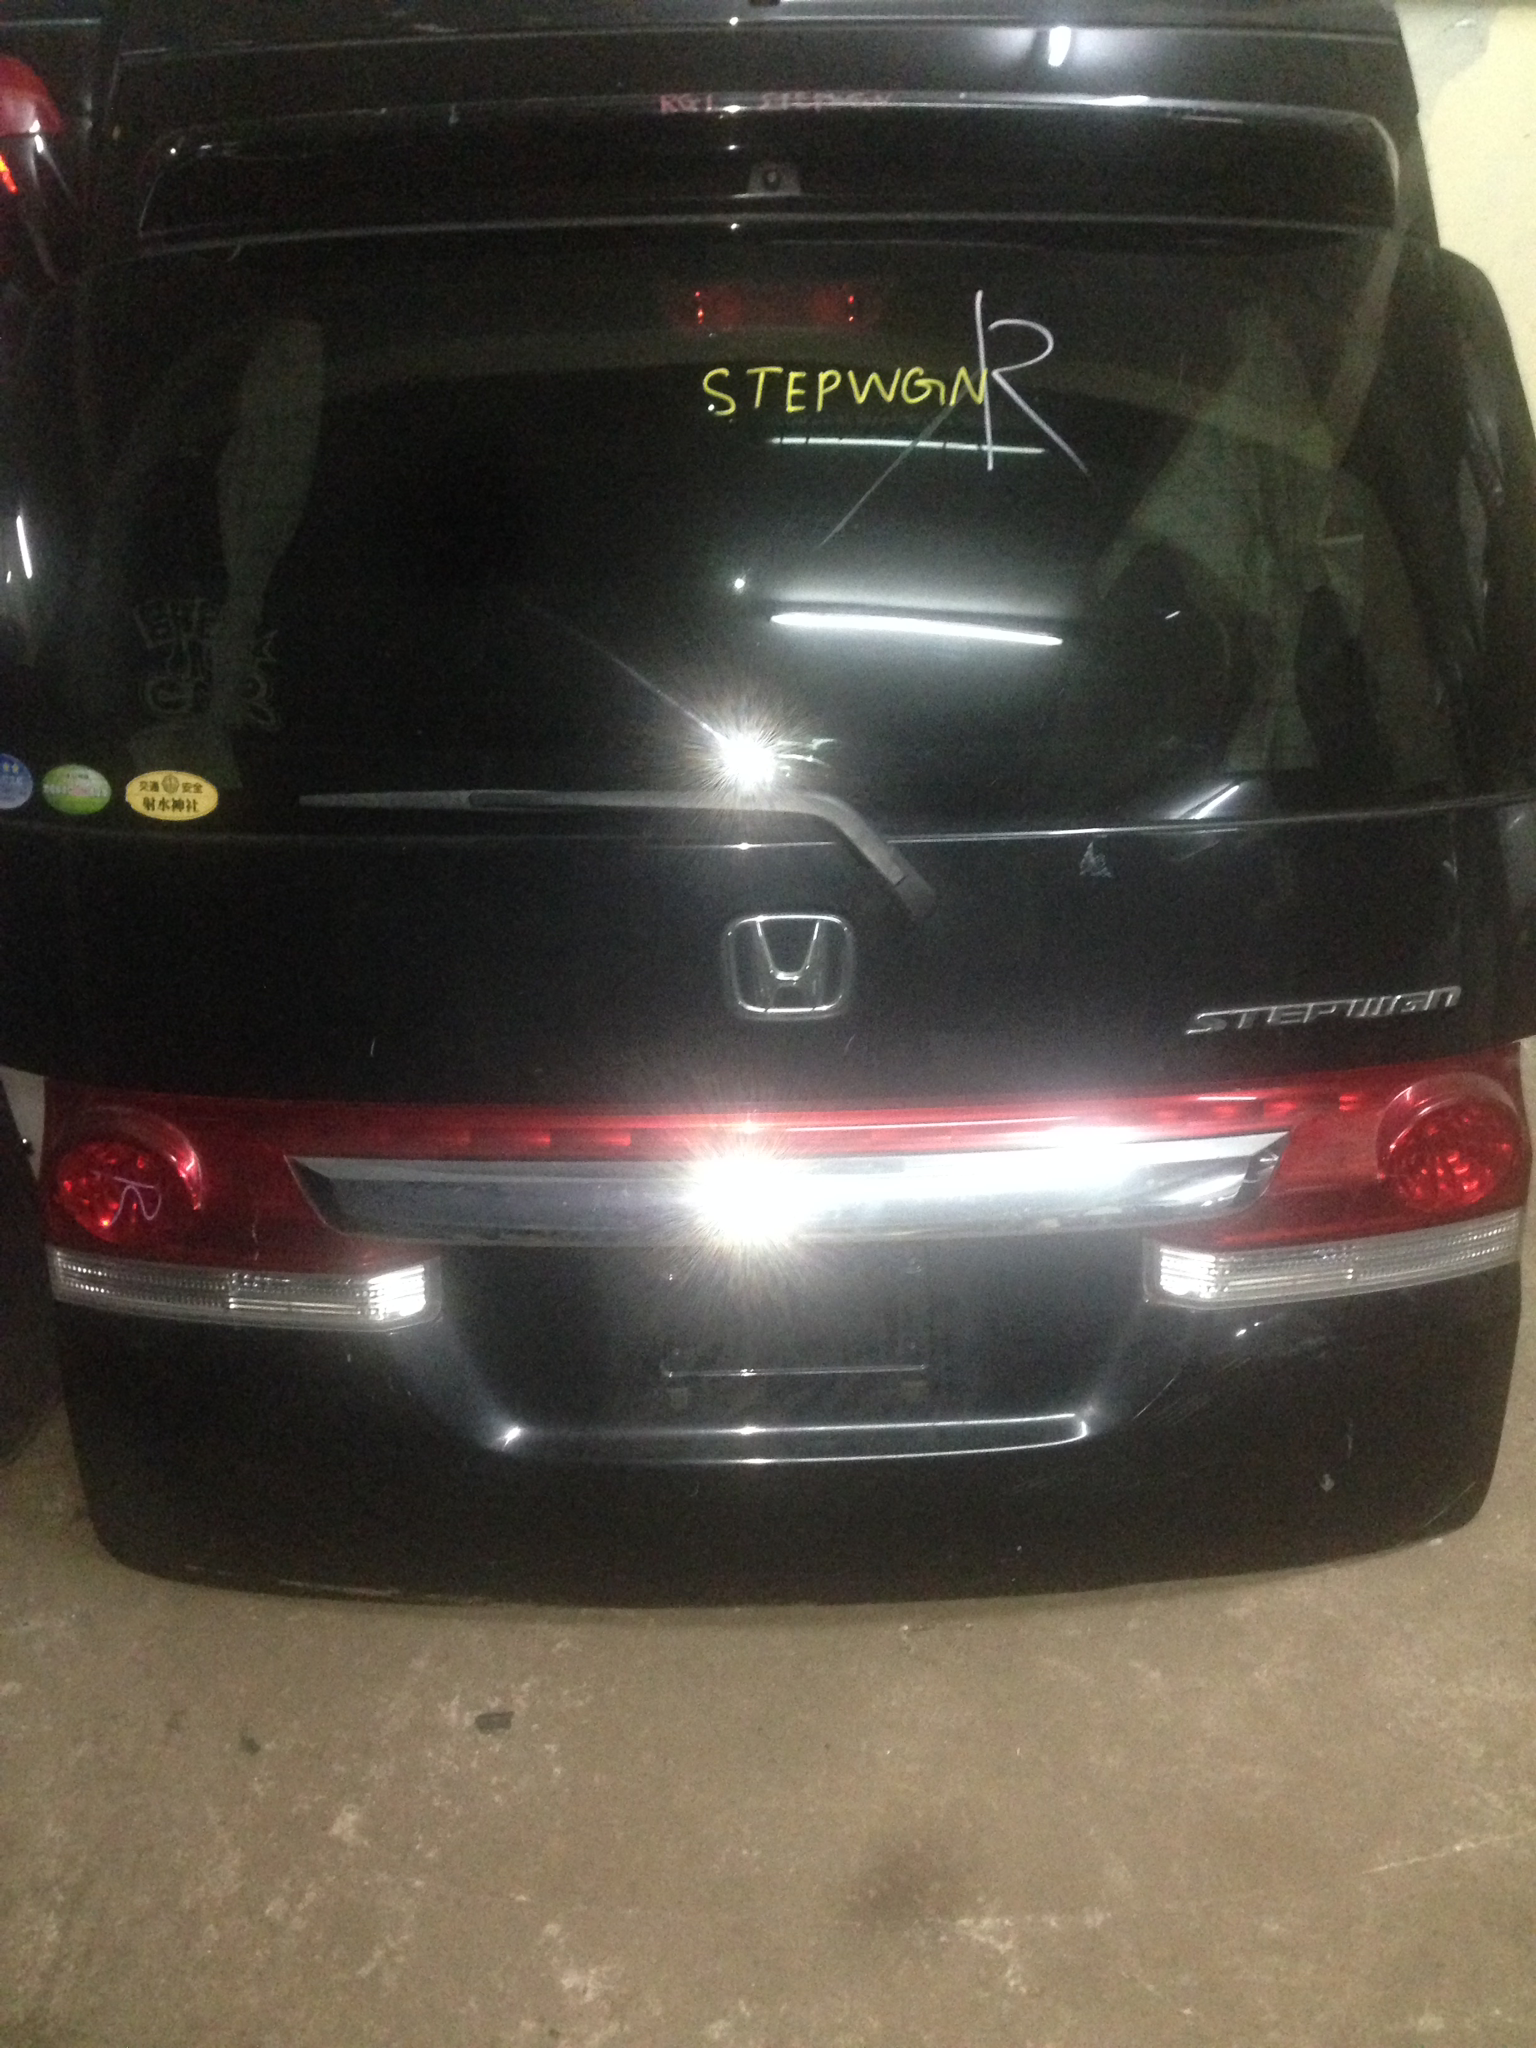 Honda stepwgn boot 00961